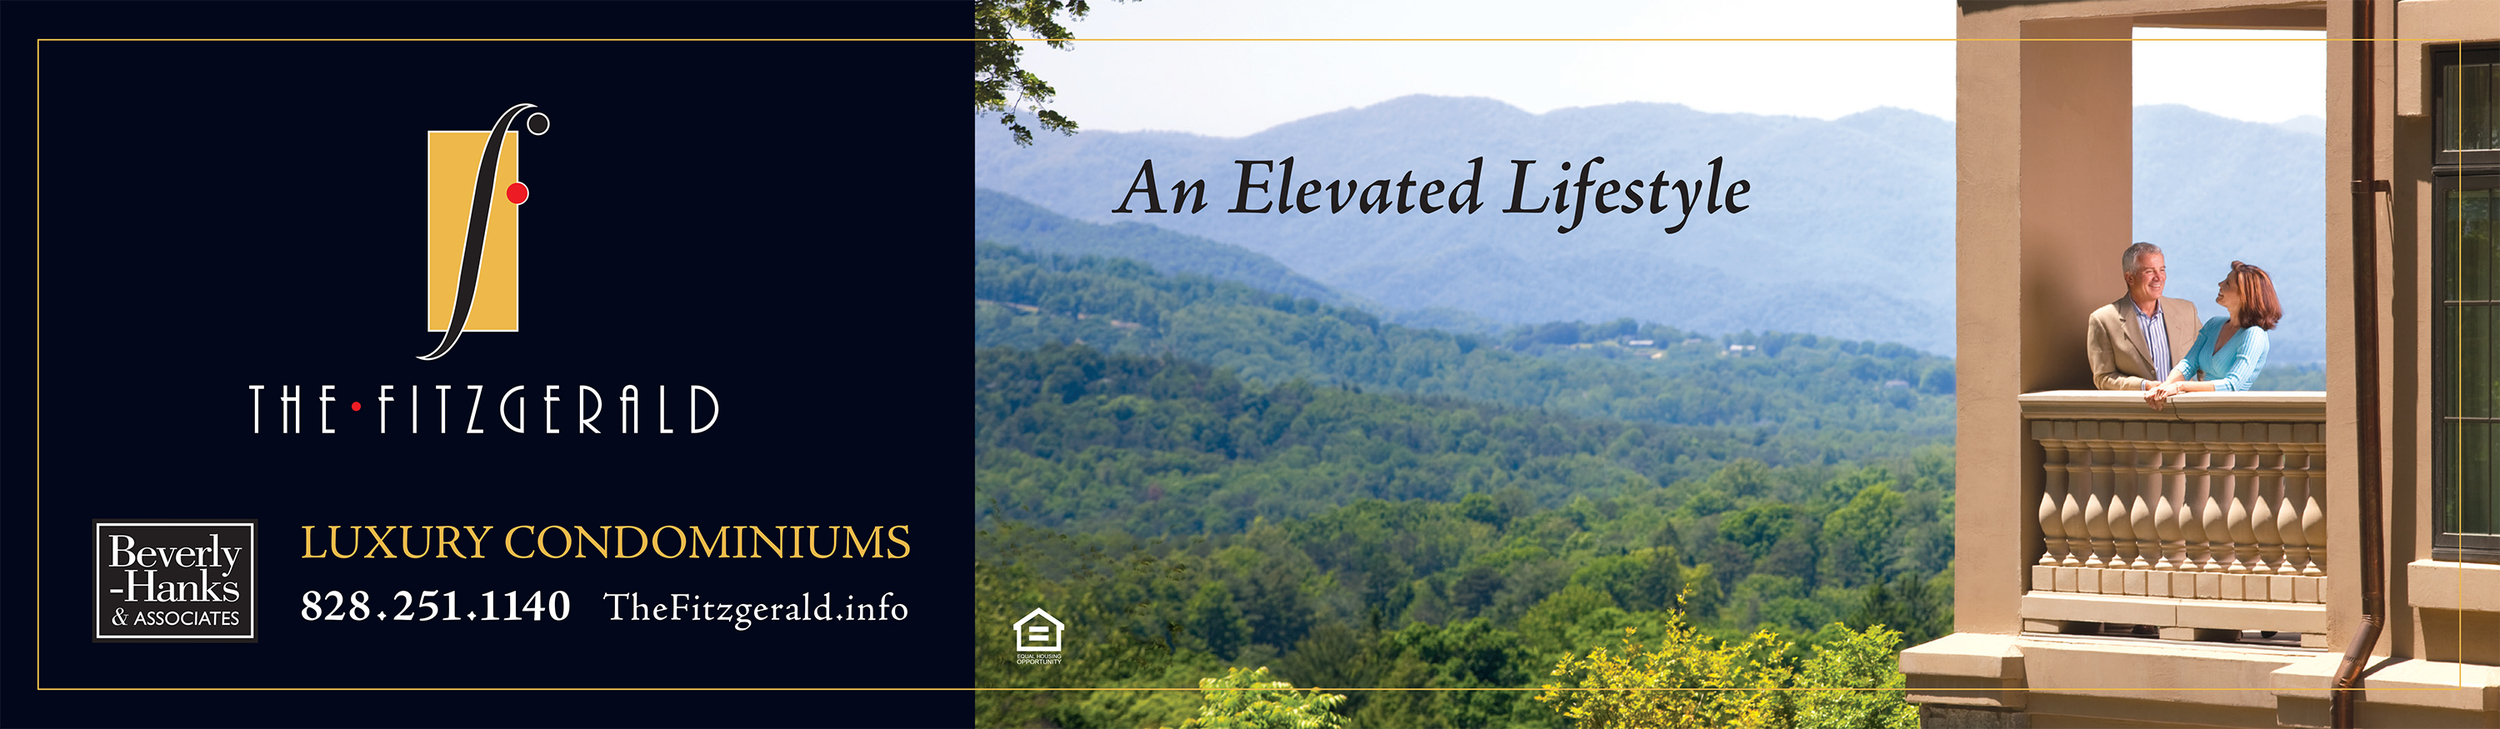 """The Fitzgerald """"Elevated Lifestyle"""" Outdoor Board"""